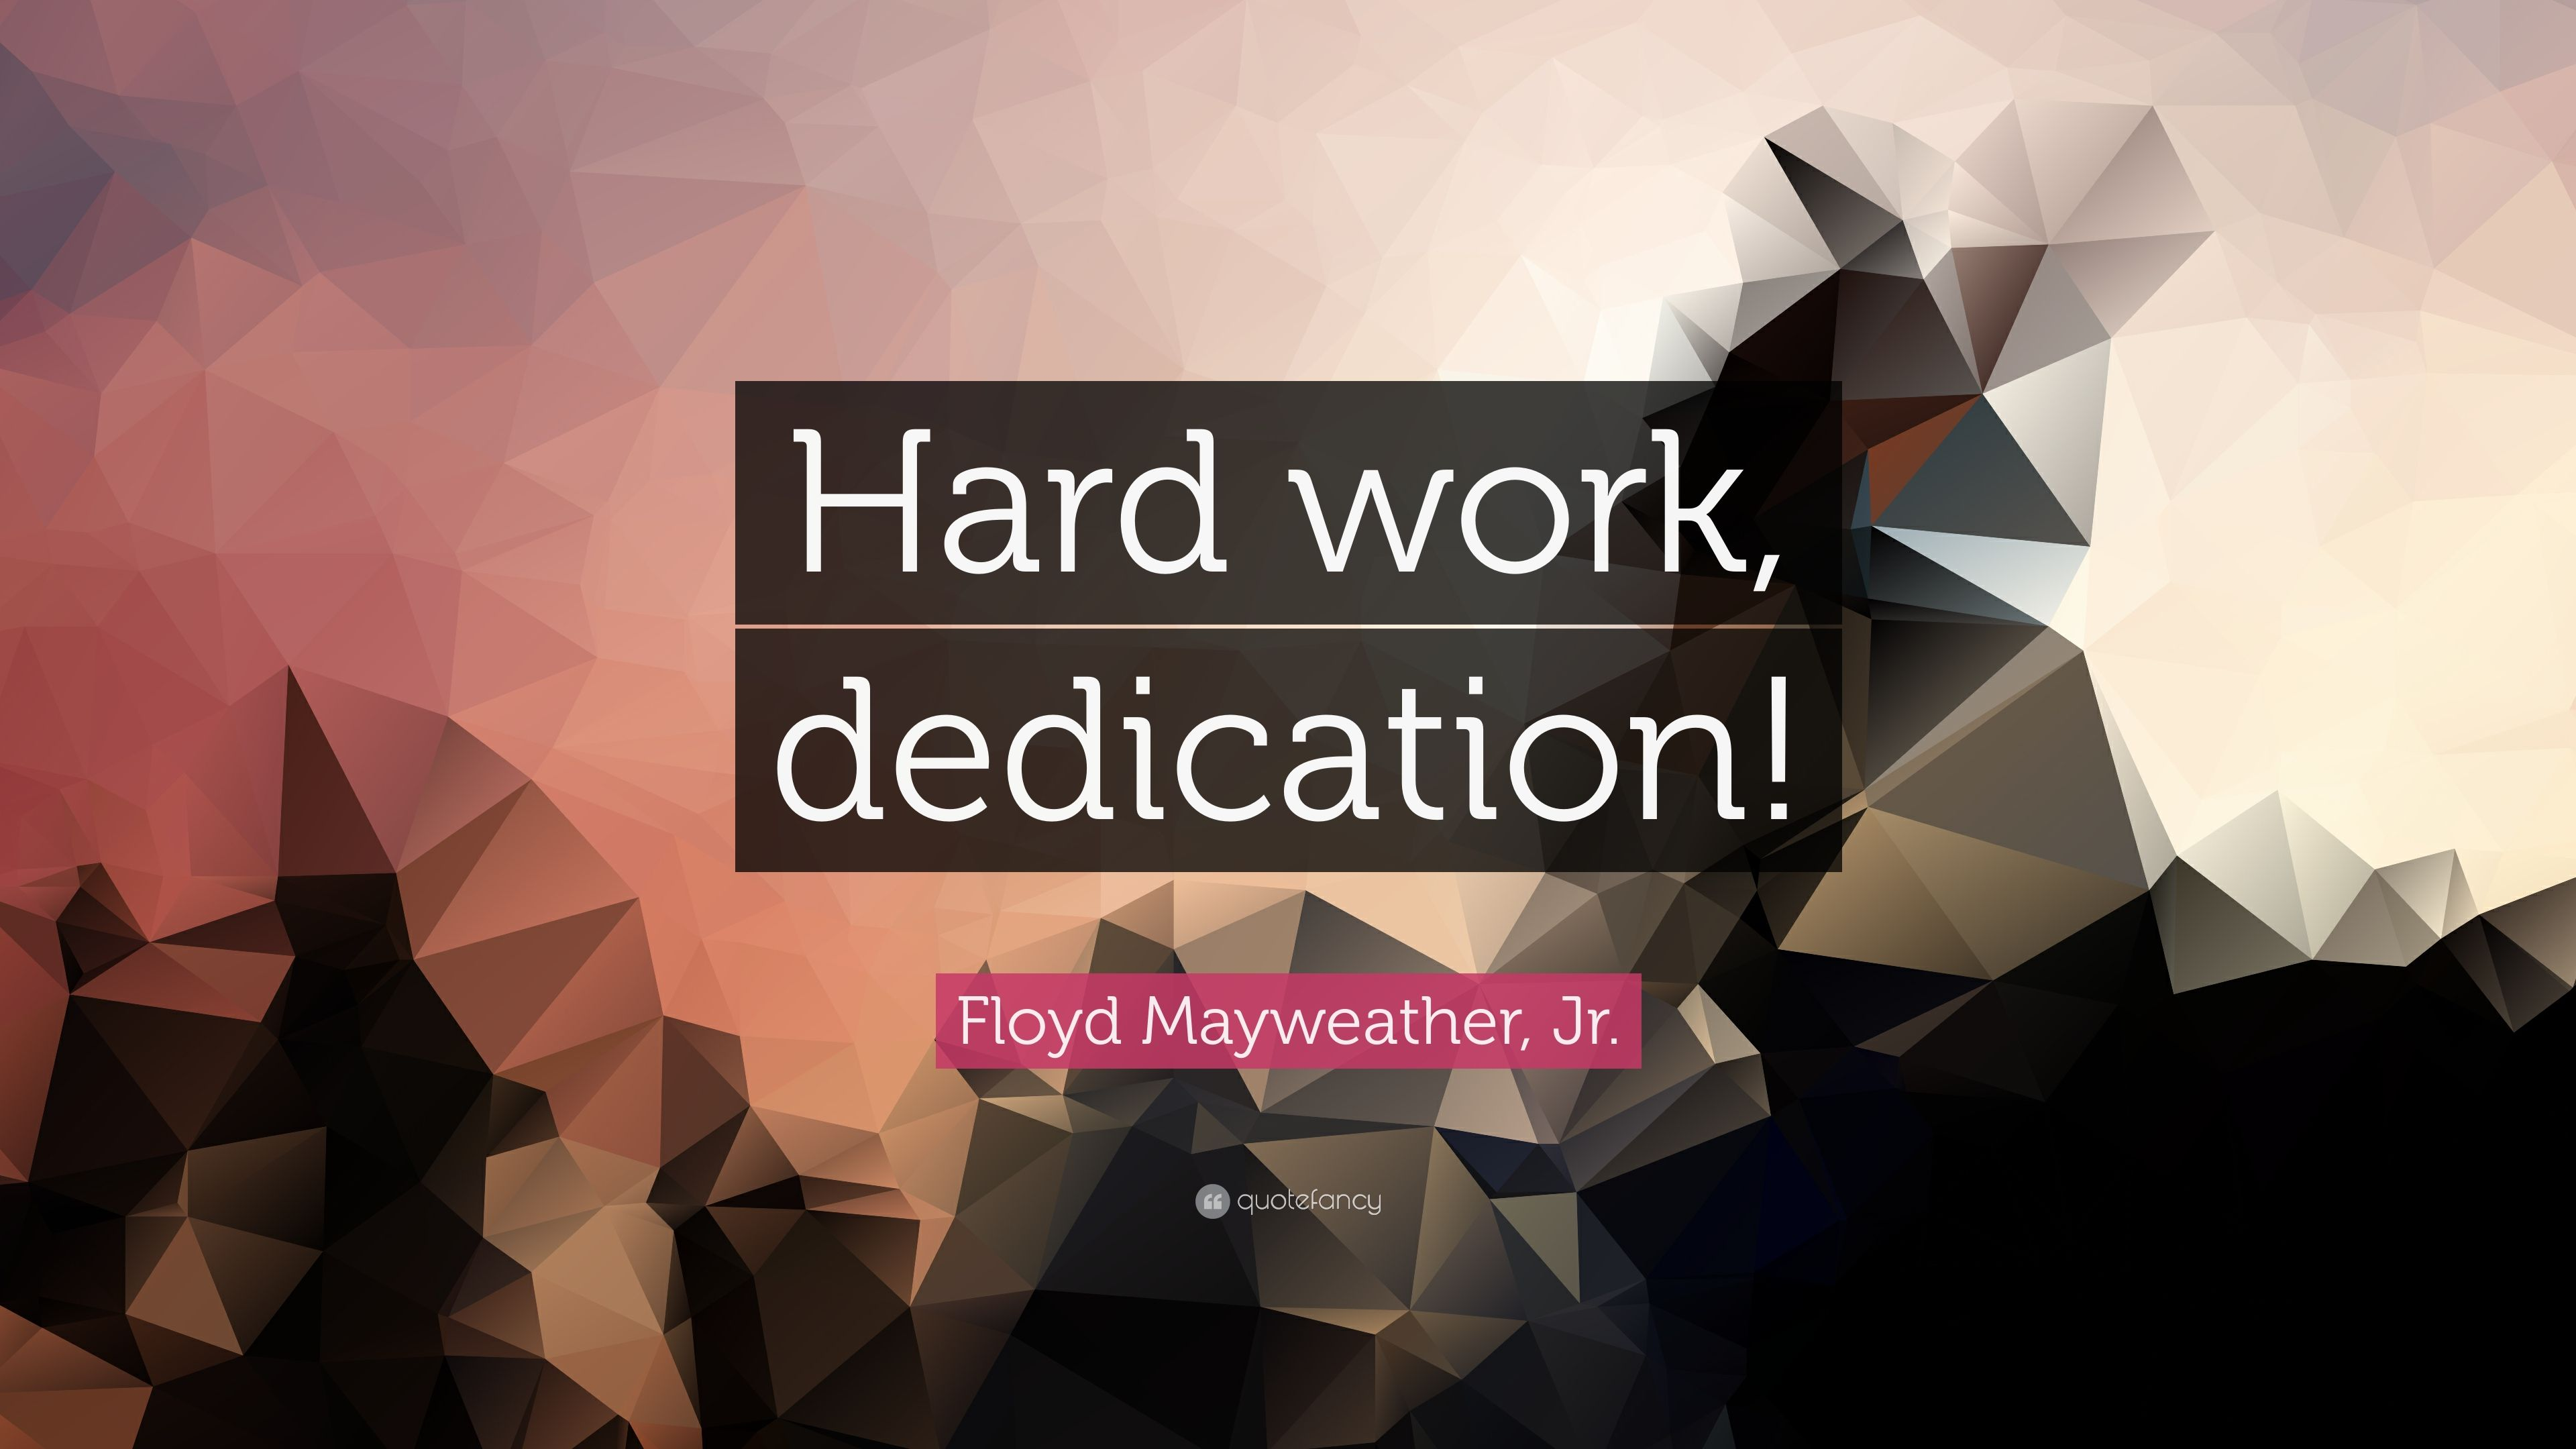 Floyd mayweather jr quote hard work dedication 12 wallpapers floyd mayweather jr quote hard work dedication thecheapjerseys Choice Image